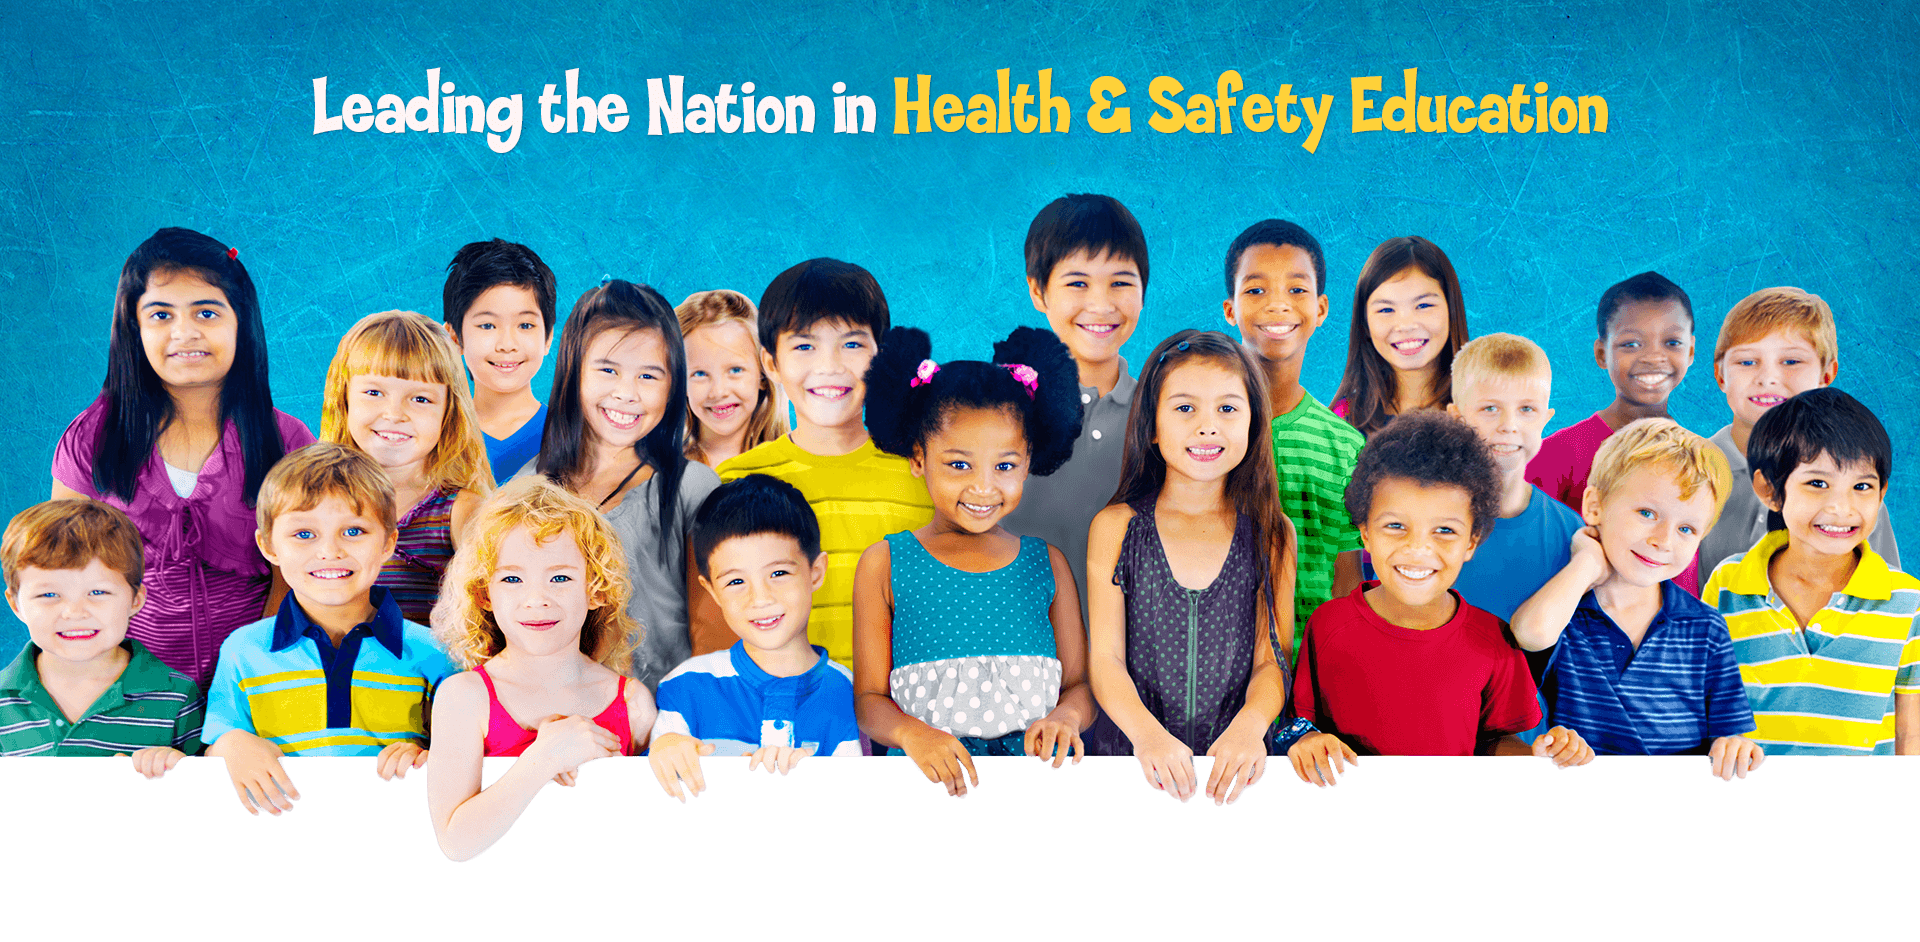 Leading the Nation in Health & Safety Education